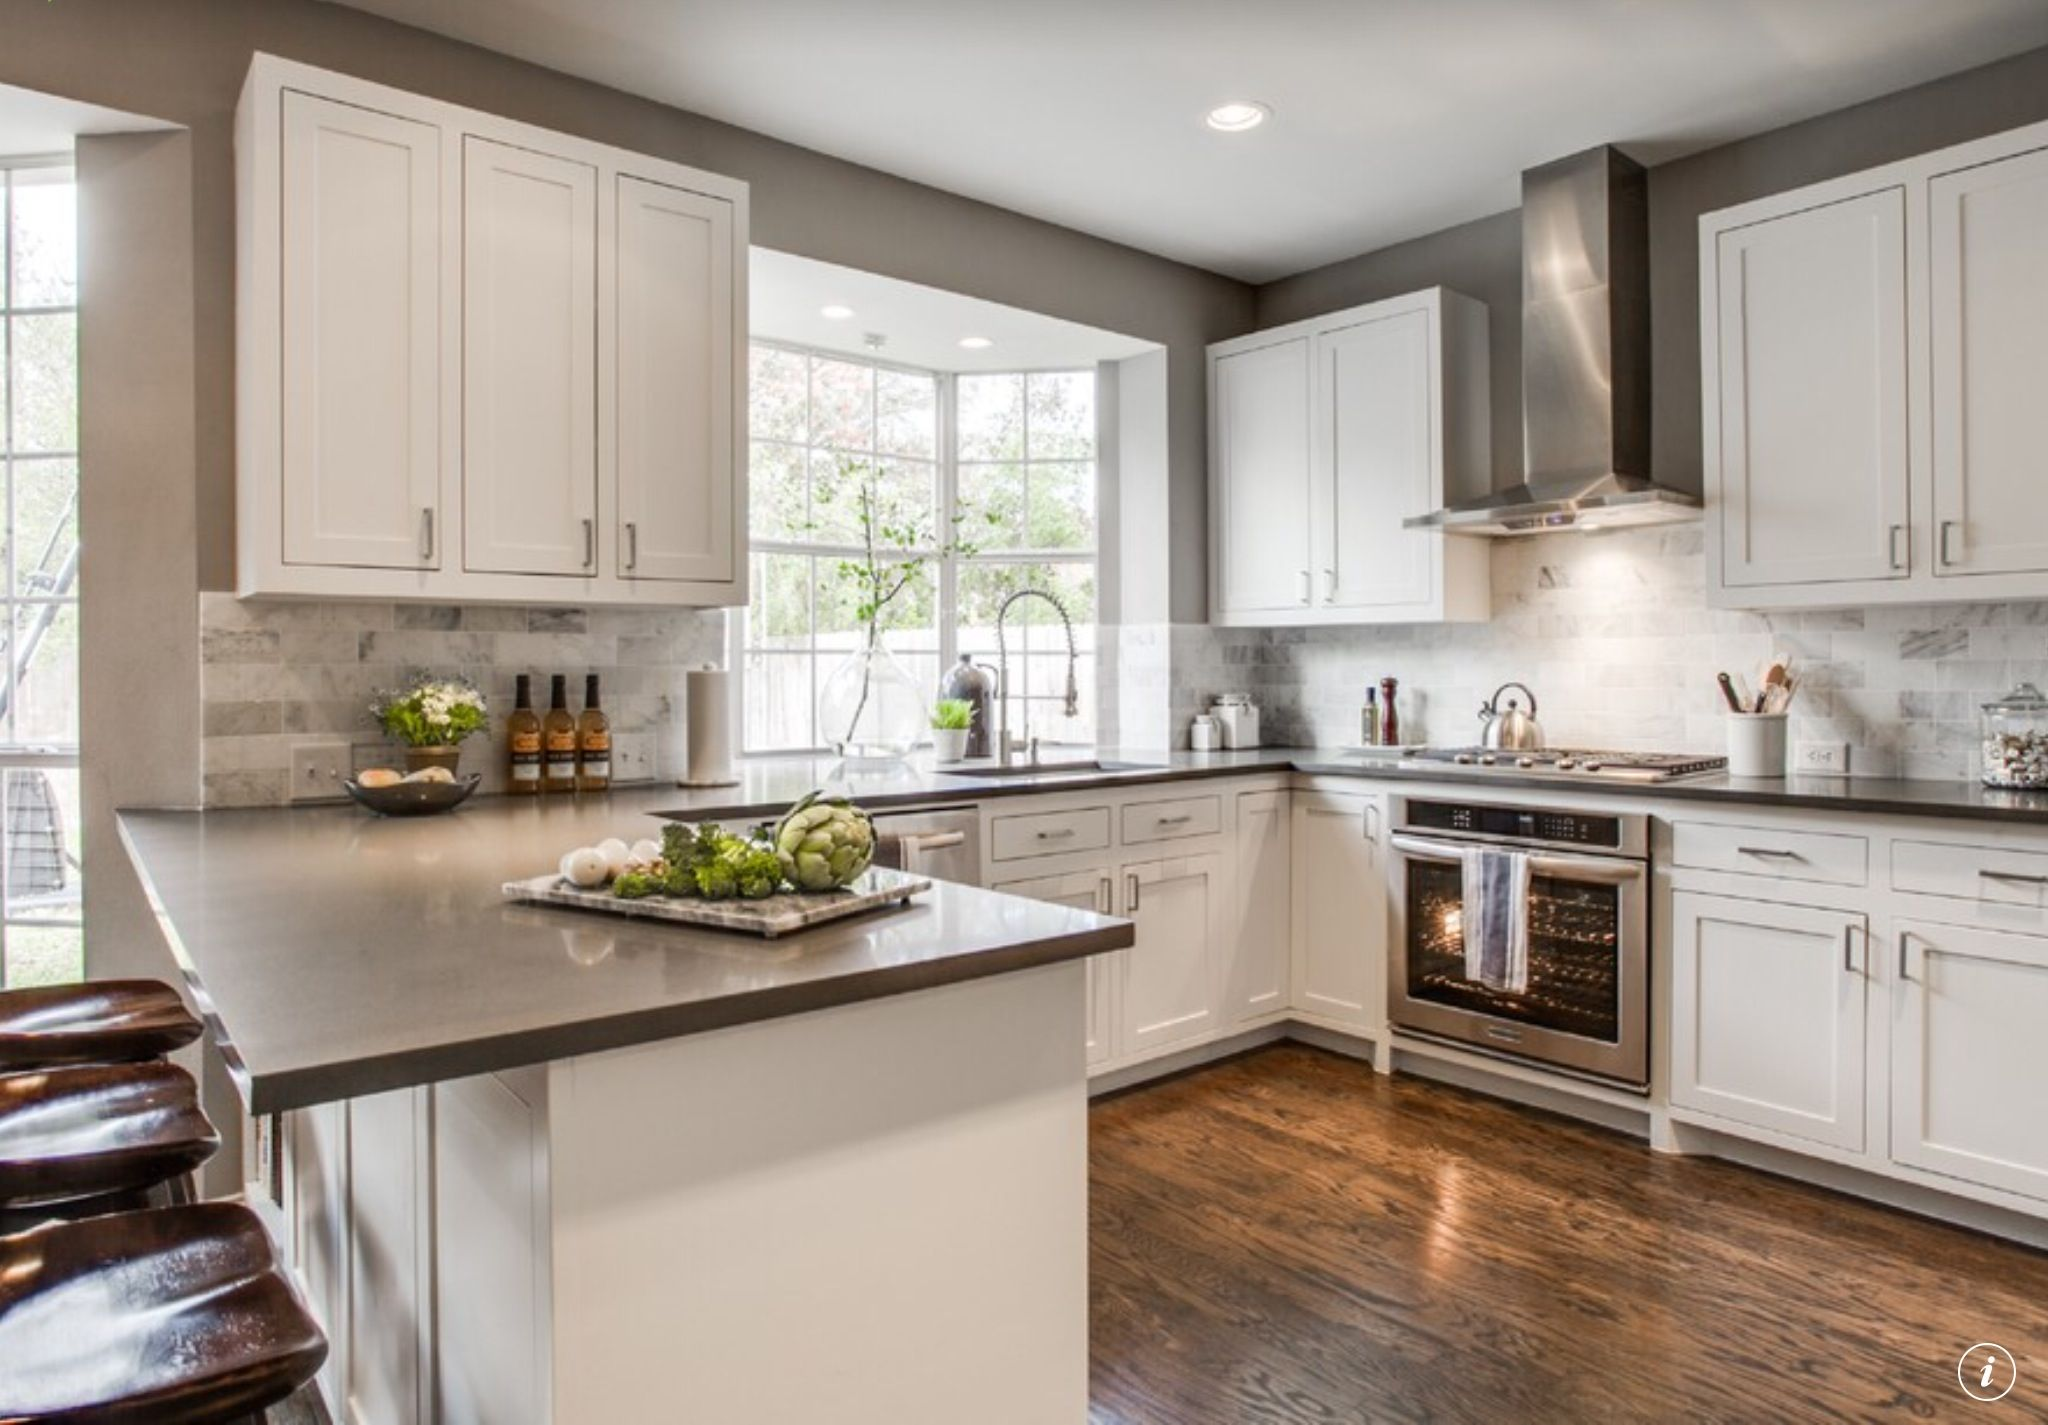 Separate Cooktop And Oven Kitchen White Blues Grays - White cupboards grey countertops